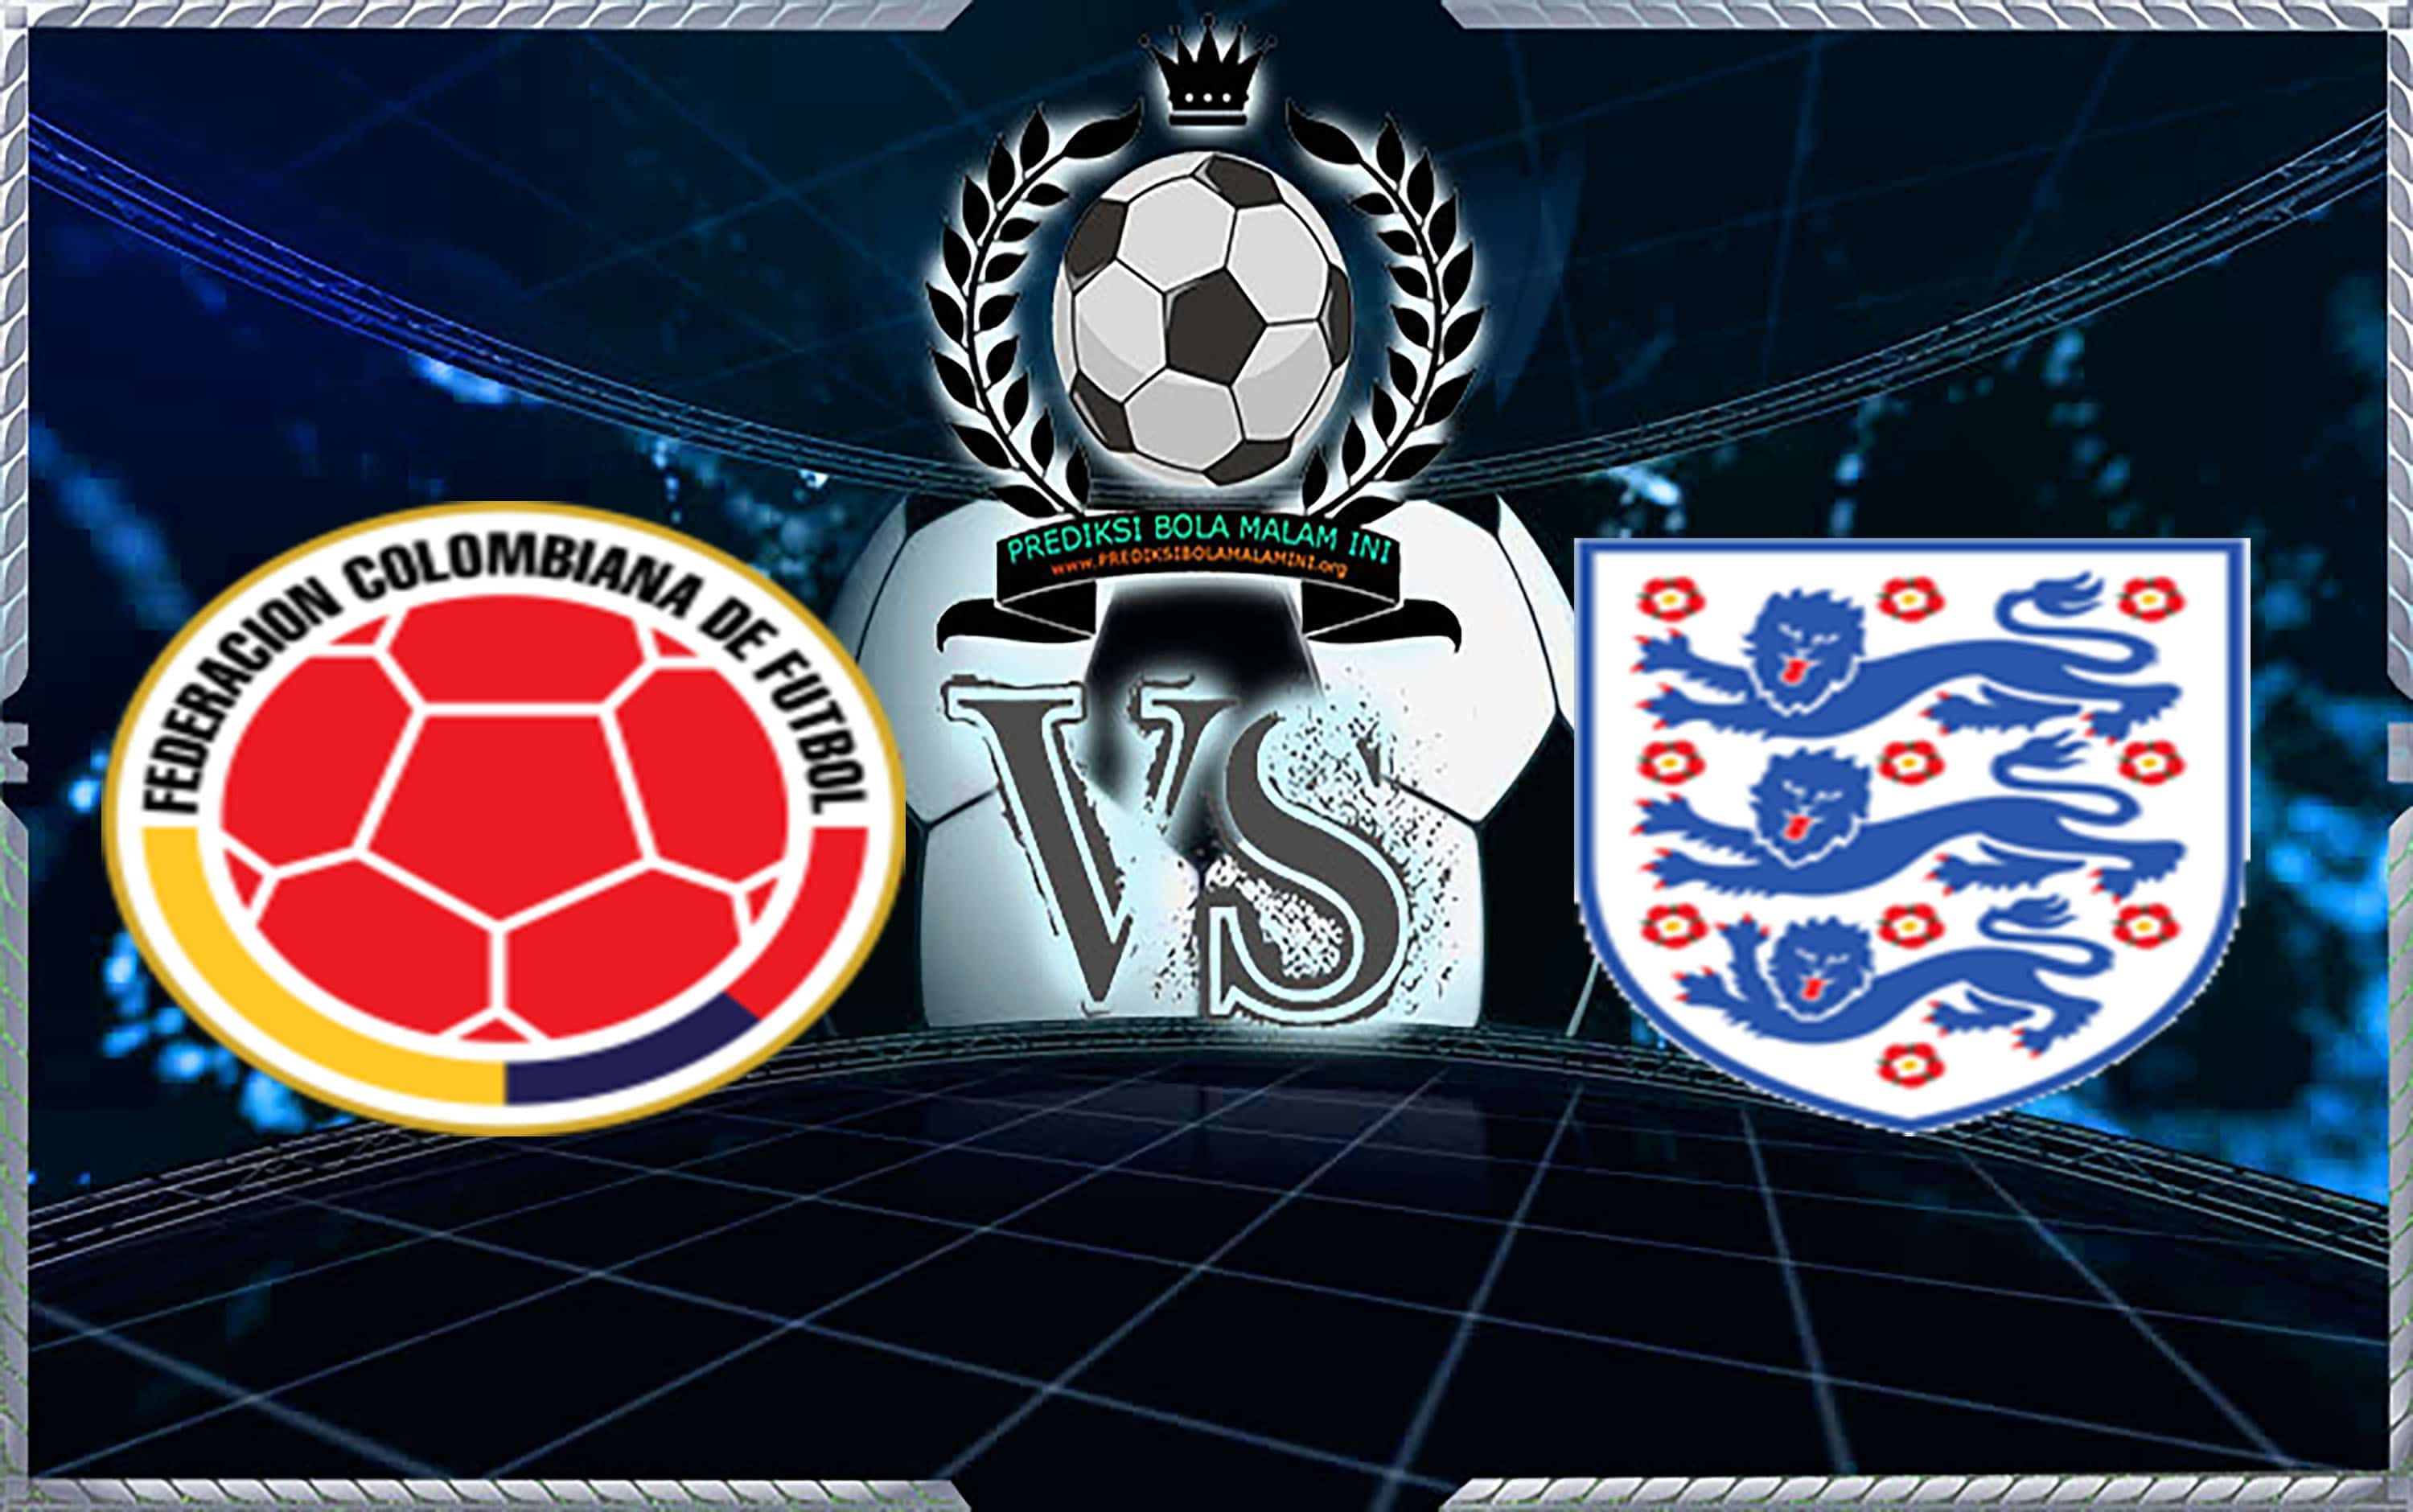 Prediksi Shoes Kolombia Vs Interior 4 Juli 2018